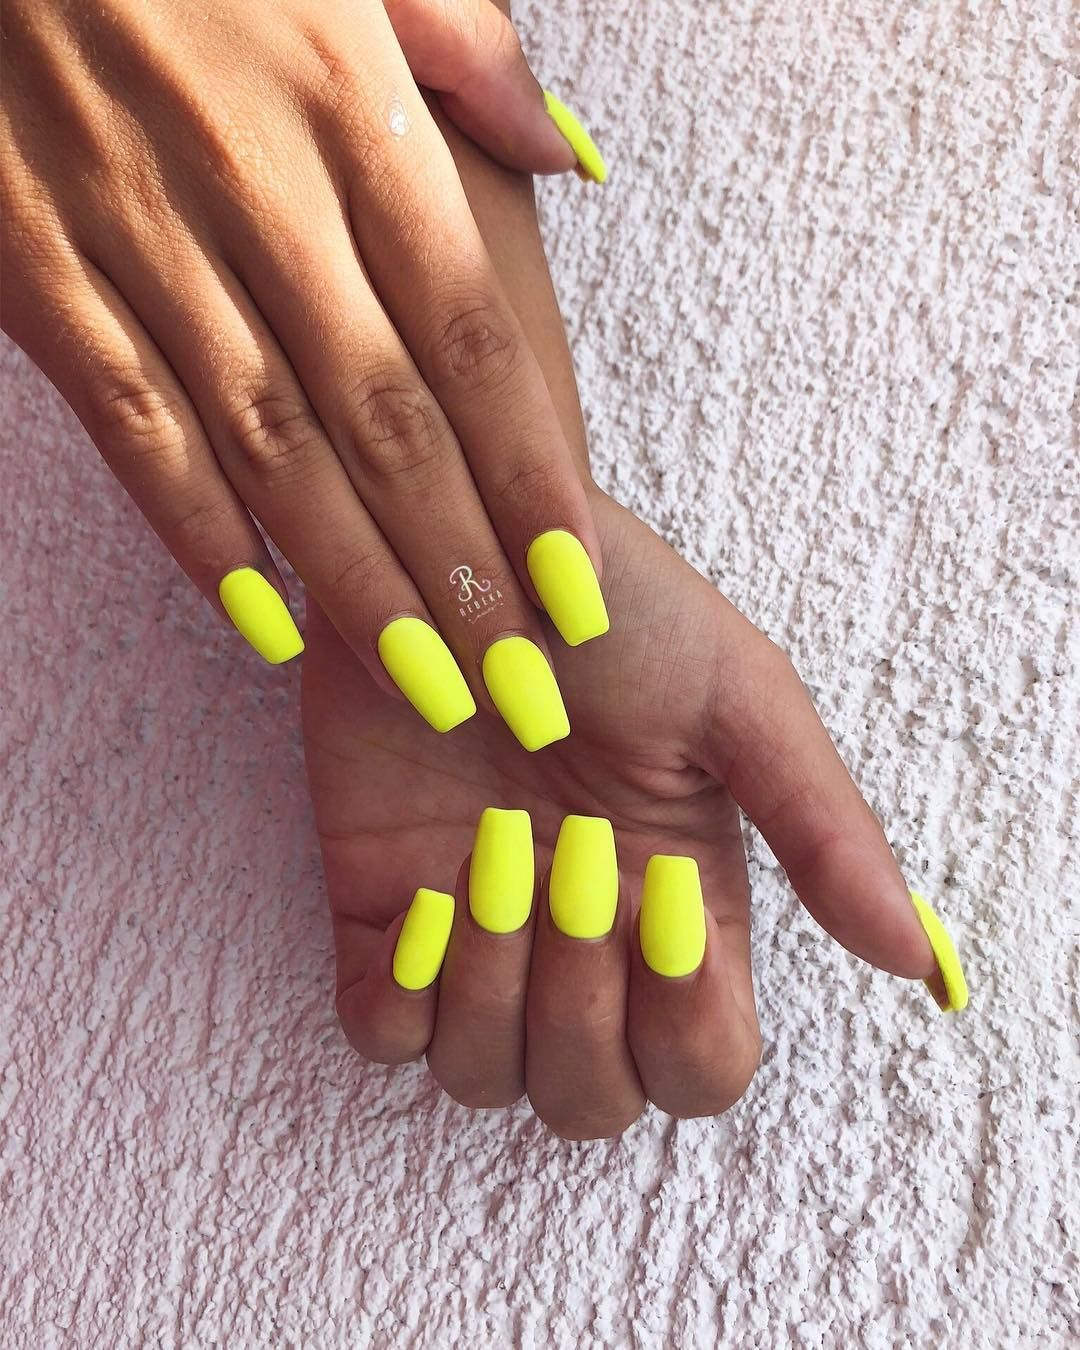 Yellow Nails Nail Nailart Neon Neonnailsummer Neonnails Summer Summernails Summerday Summervibes Summer Summerti With Images Gelove Nehty Nehty Nehty Stiletto